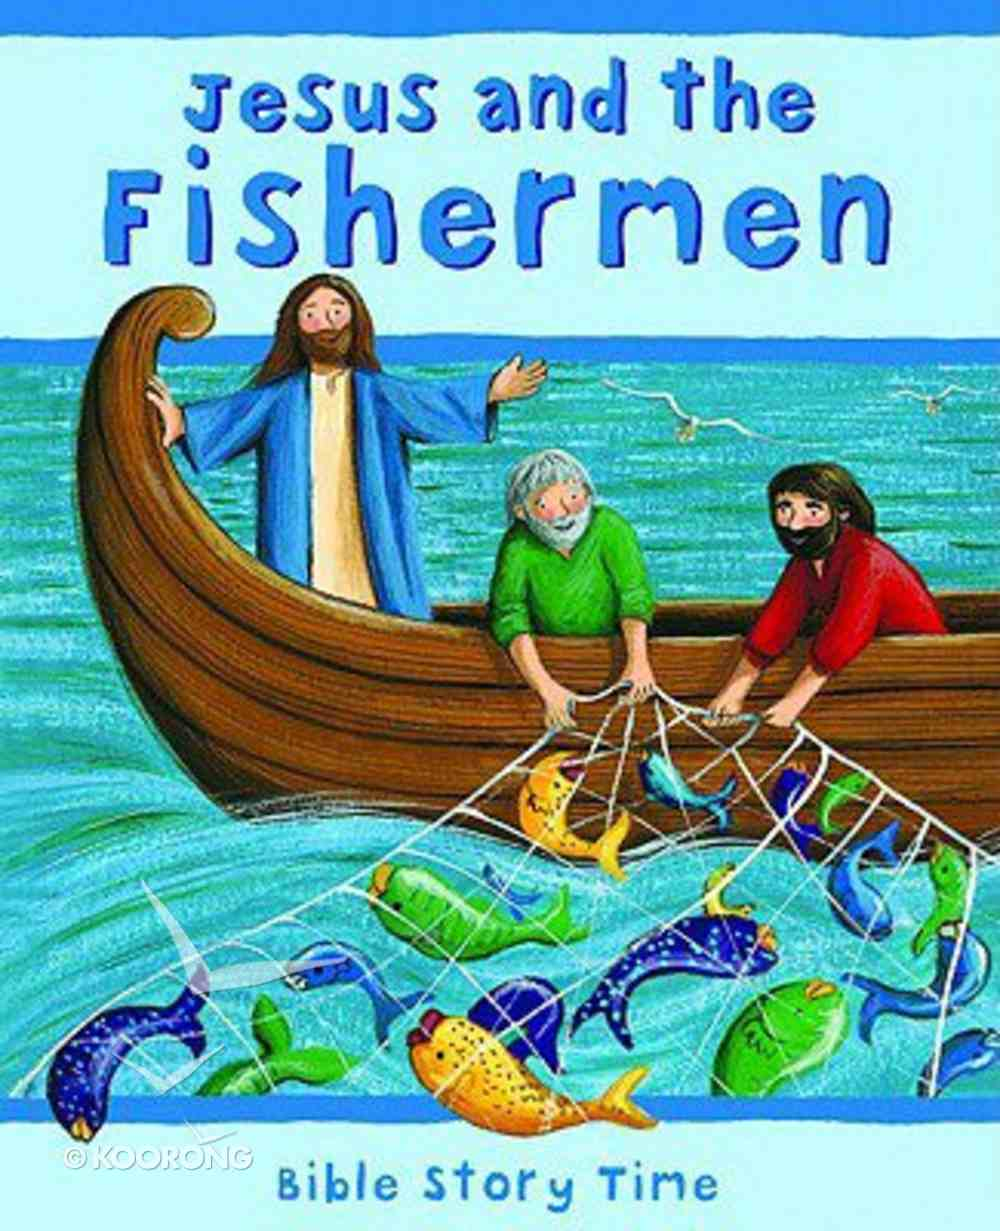 Jesus and the Fisherman (Bible Story Time New Testament Series) Hardback